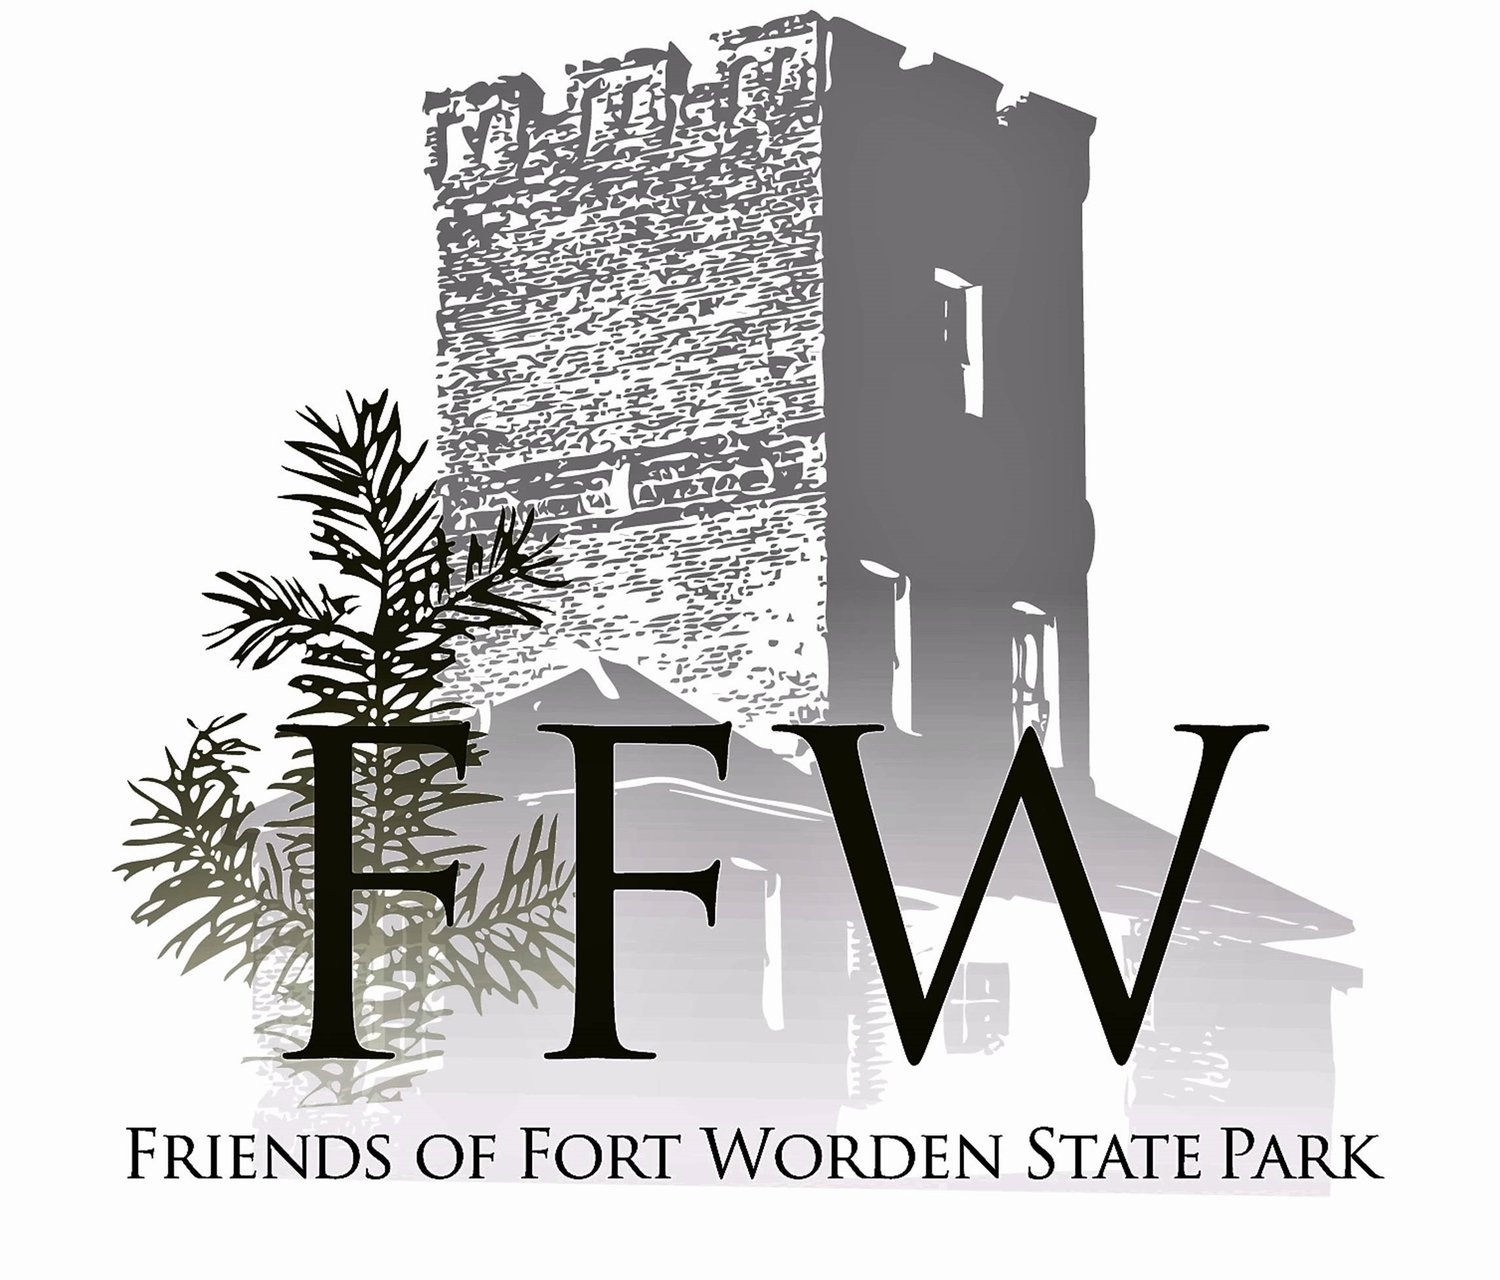 Friends of Fort Worden State Park